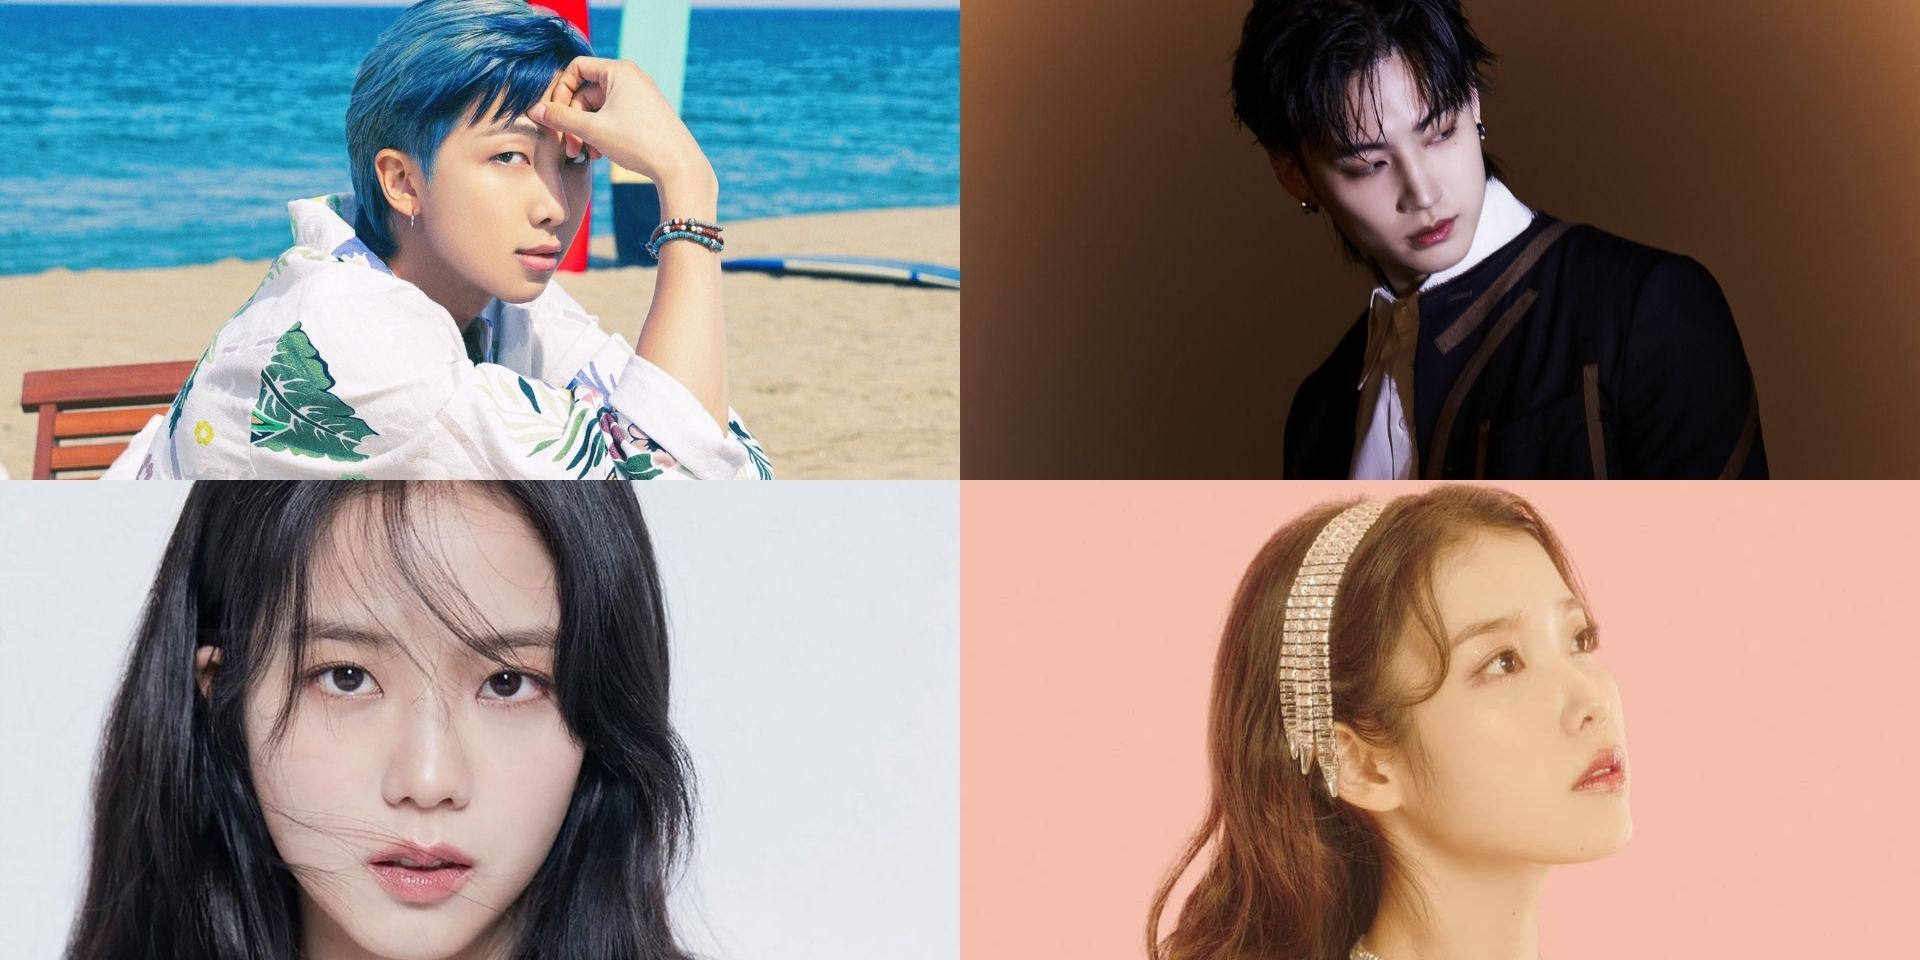 7 must-read books according to your favourite K-pop artists, including BTS' RM, GOT7's JAY B, BLACKPINK's Jisoo, IU, and more